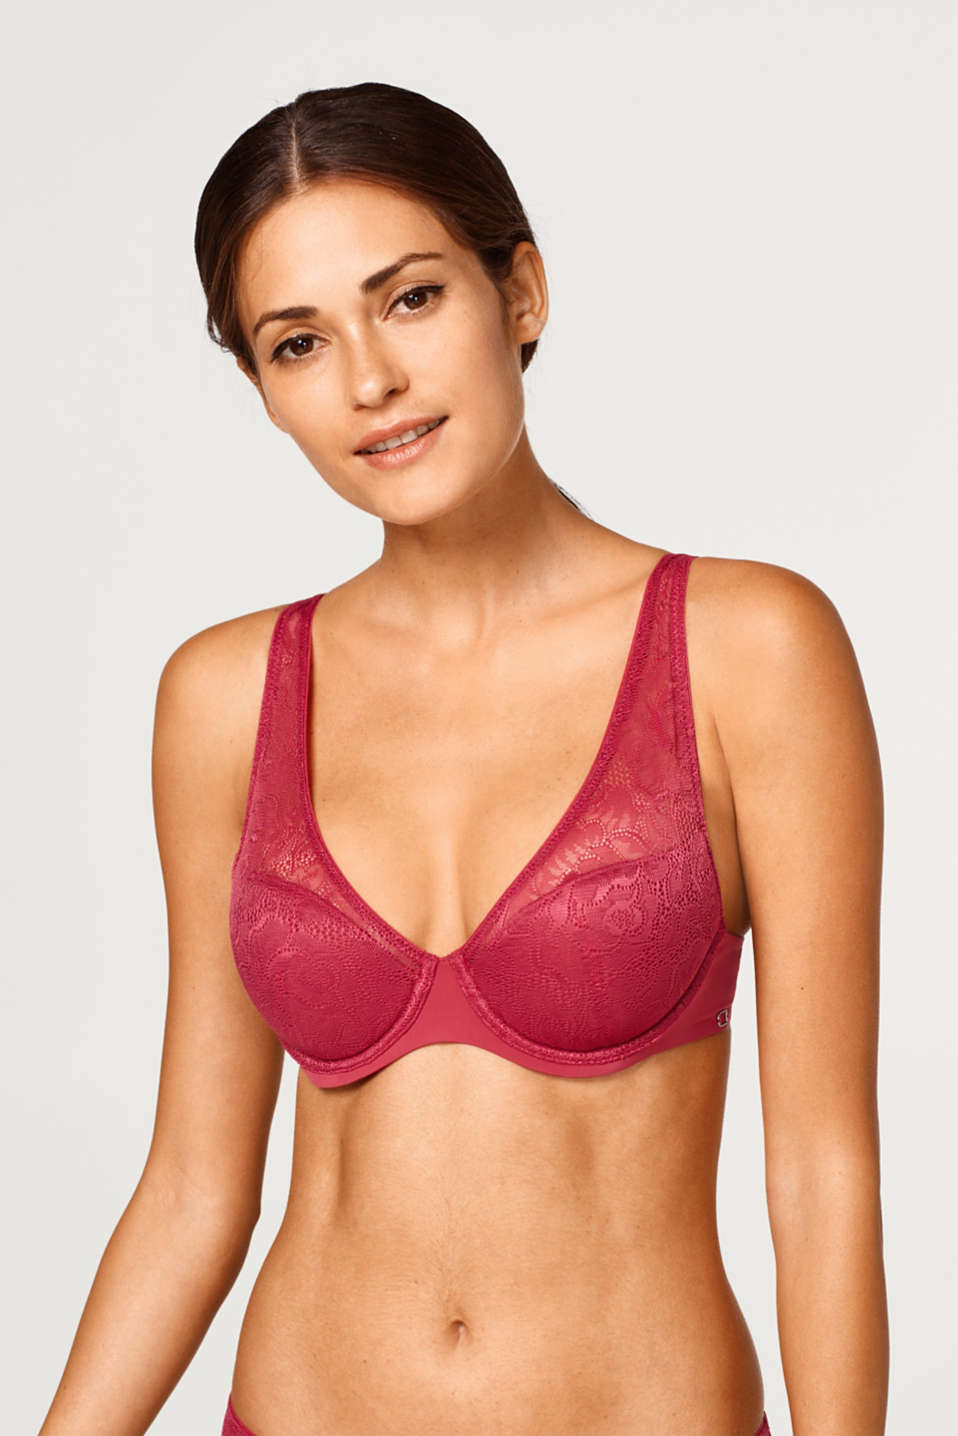 Esprit - NYE half padded underwire bra made of floral lace